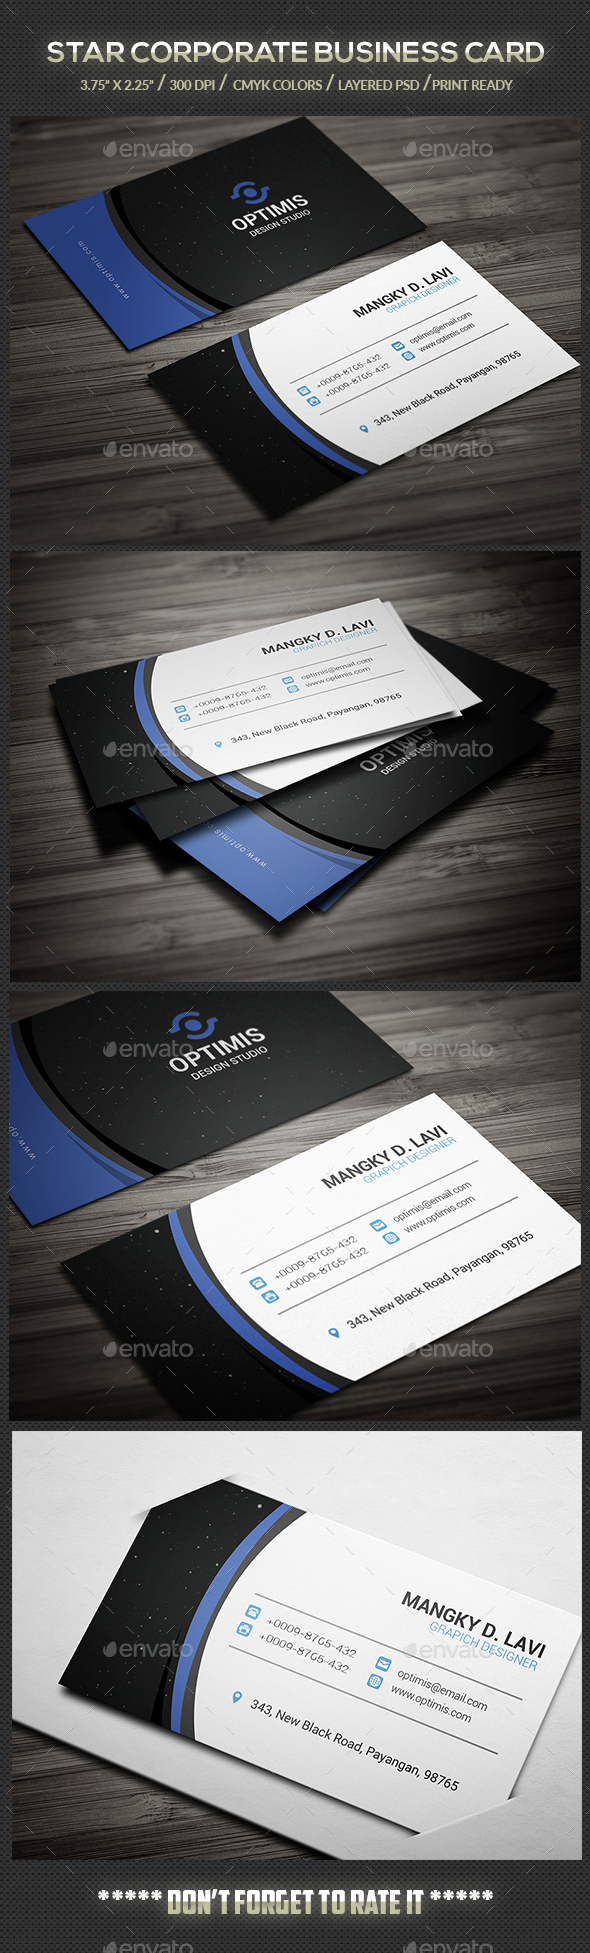 Star corporate business card corporate business business cards star corporate business card corporate business cards download here https reheart Choice Image